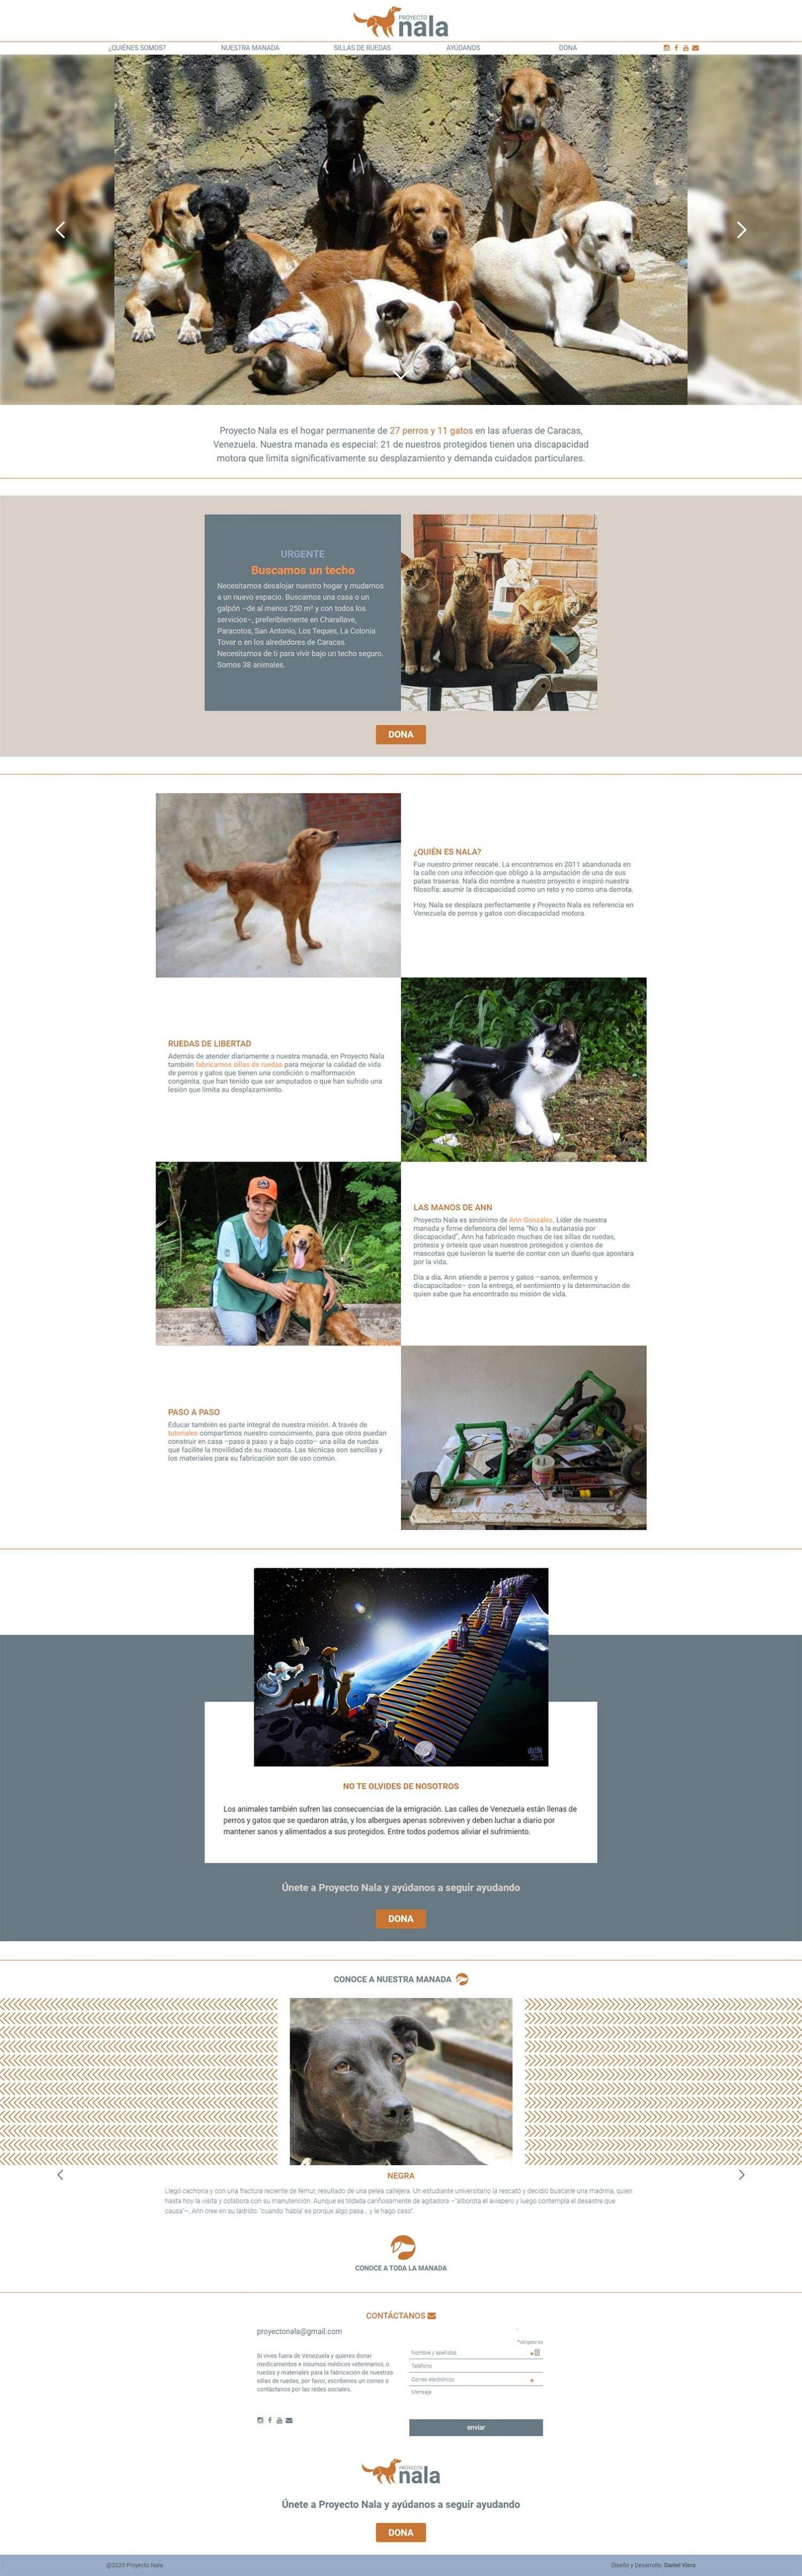 Proyecto Nala | New website for the permanent home of 27 dogs and 11 cats with disabilities. Developed with WordPress with bootstrap 4 and sass. Responsive, with infinite scrolling and mansory.